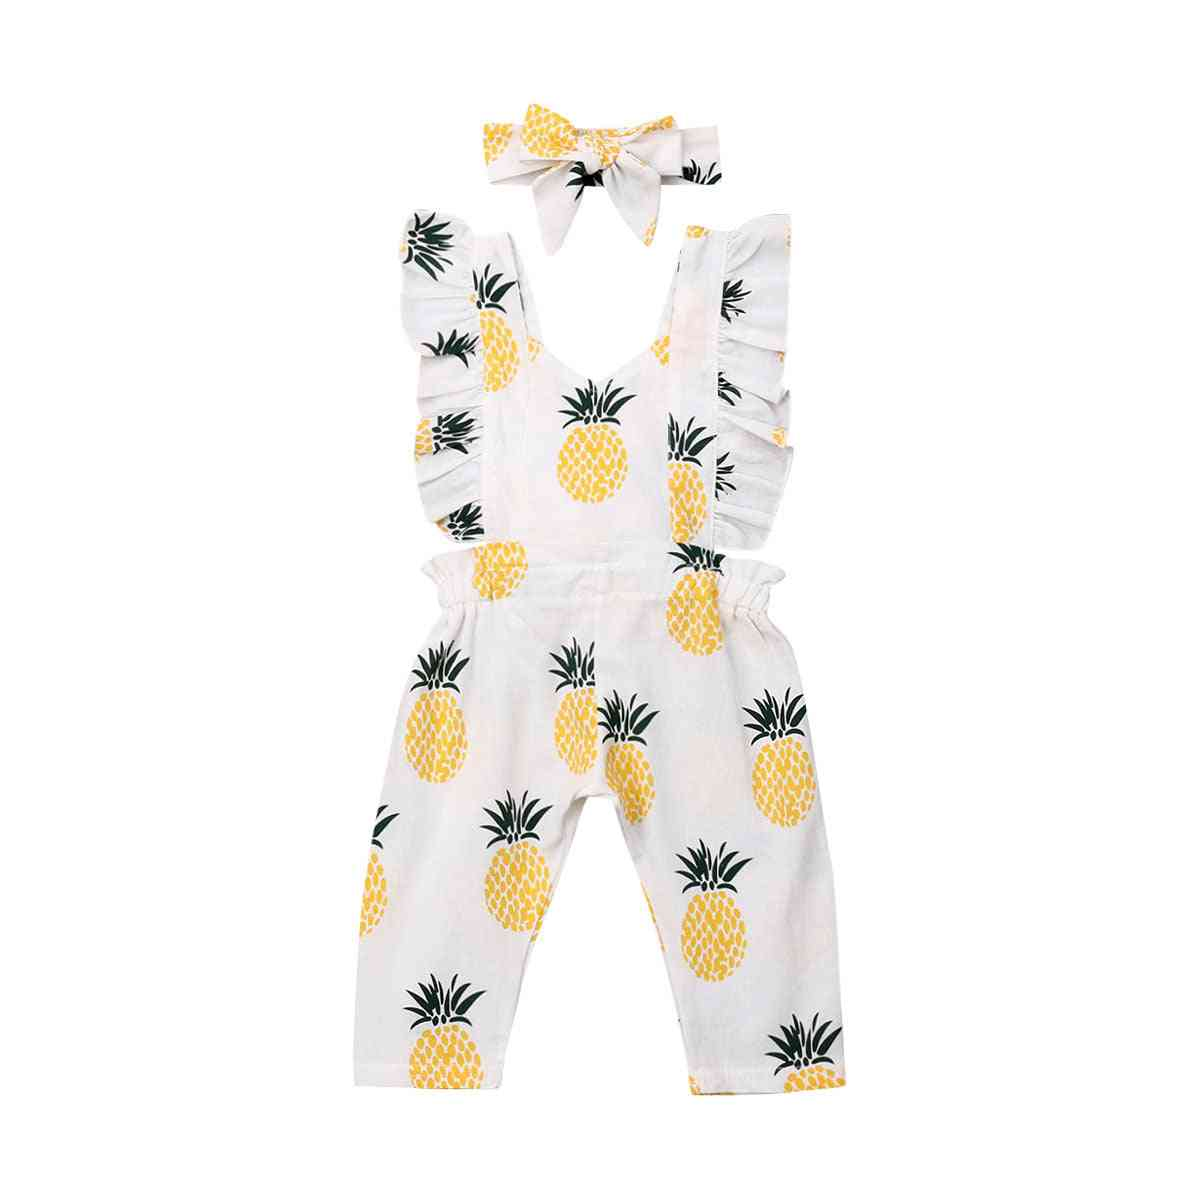 Newborn Baby Girl Clothes Sleevless Ruffle Pineapple Print Romper Jumpsuit Headband Outfits Summer Clothes